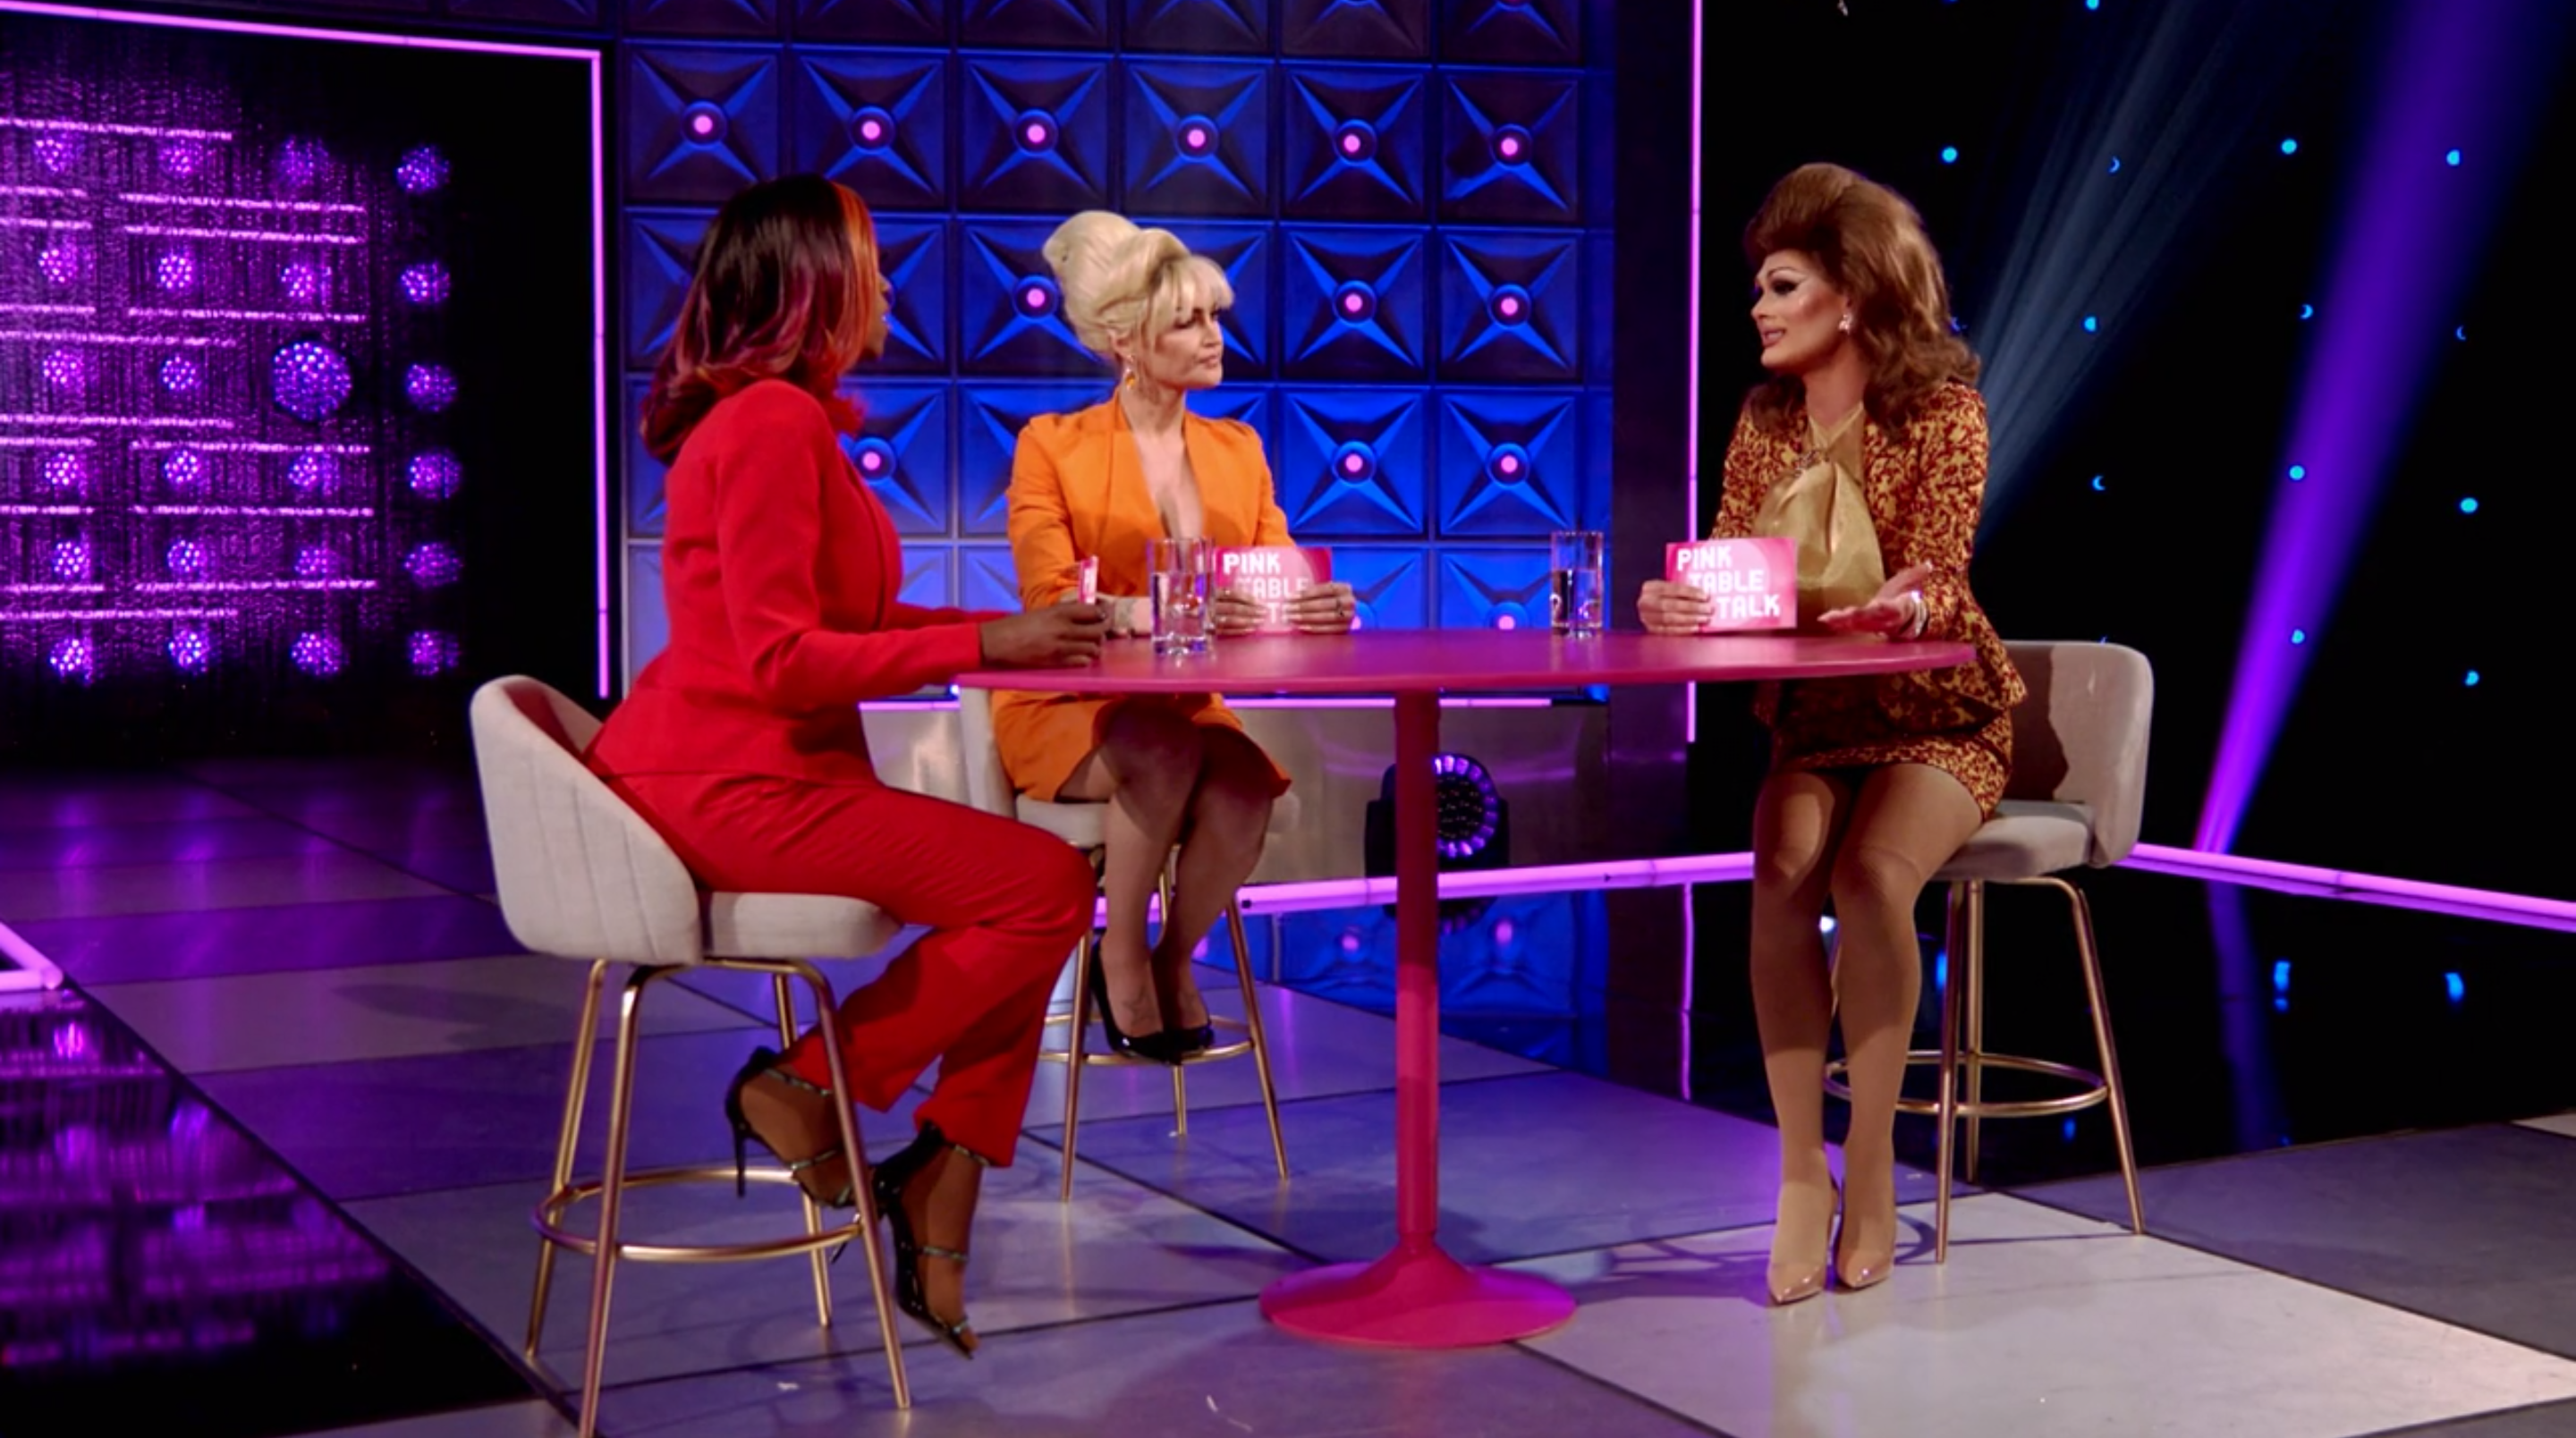 Scarlet, Kylie and Ra'Jah's Pink Table Talk about motherhood.